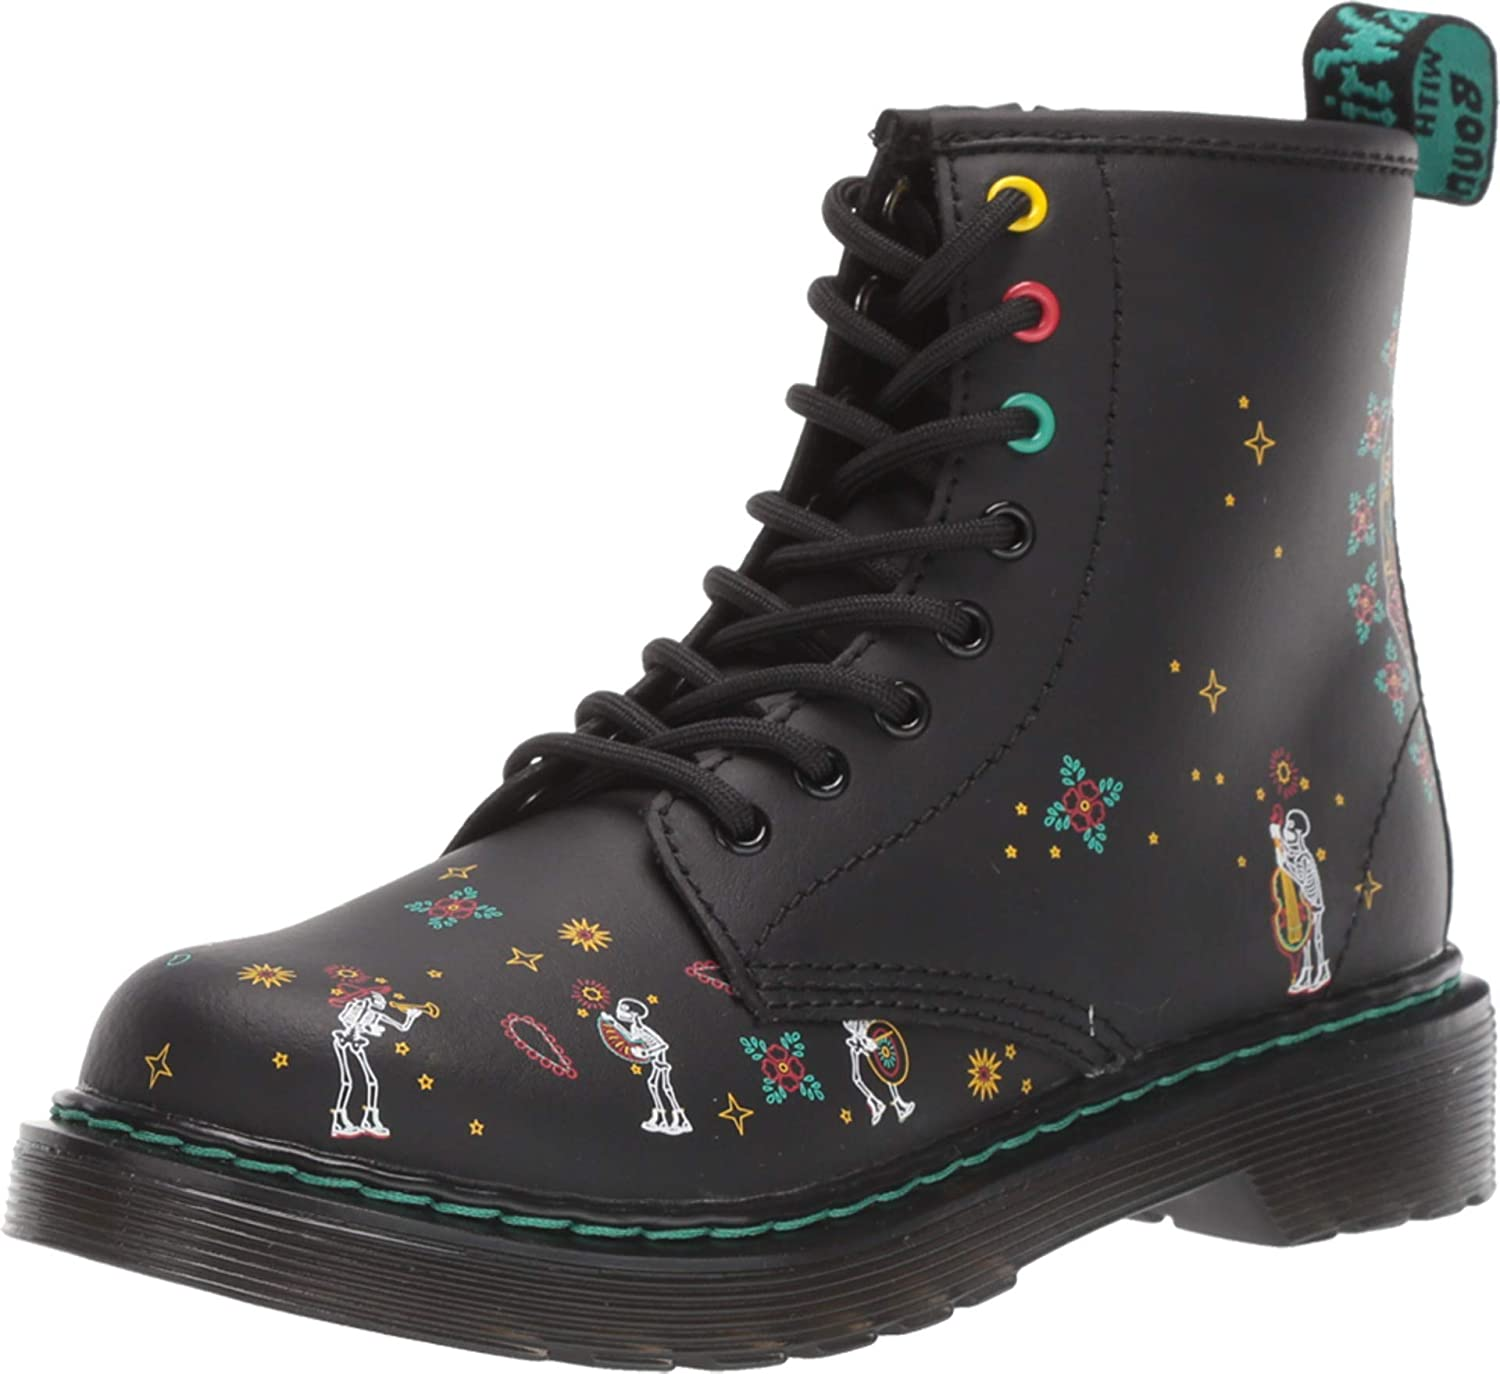 Mourn Nomina Tutti e due  Buy Dr. Martens Kid's Collection 1460 Skull (Little Kid/Big Kid) Multi Day  of The Dead Hydro Leather 1 UK (US 2 Little Kid) at Amazon.in